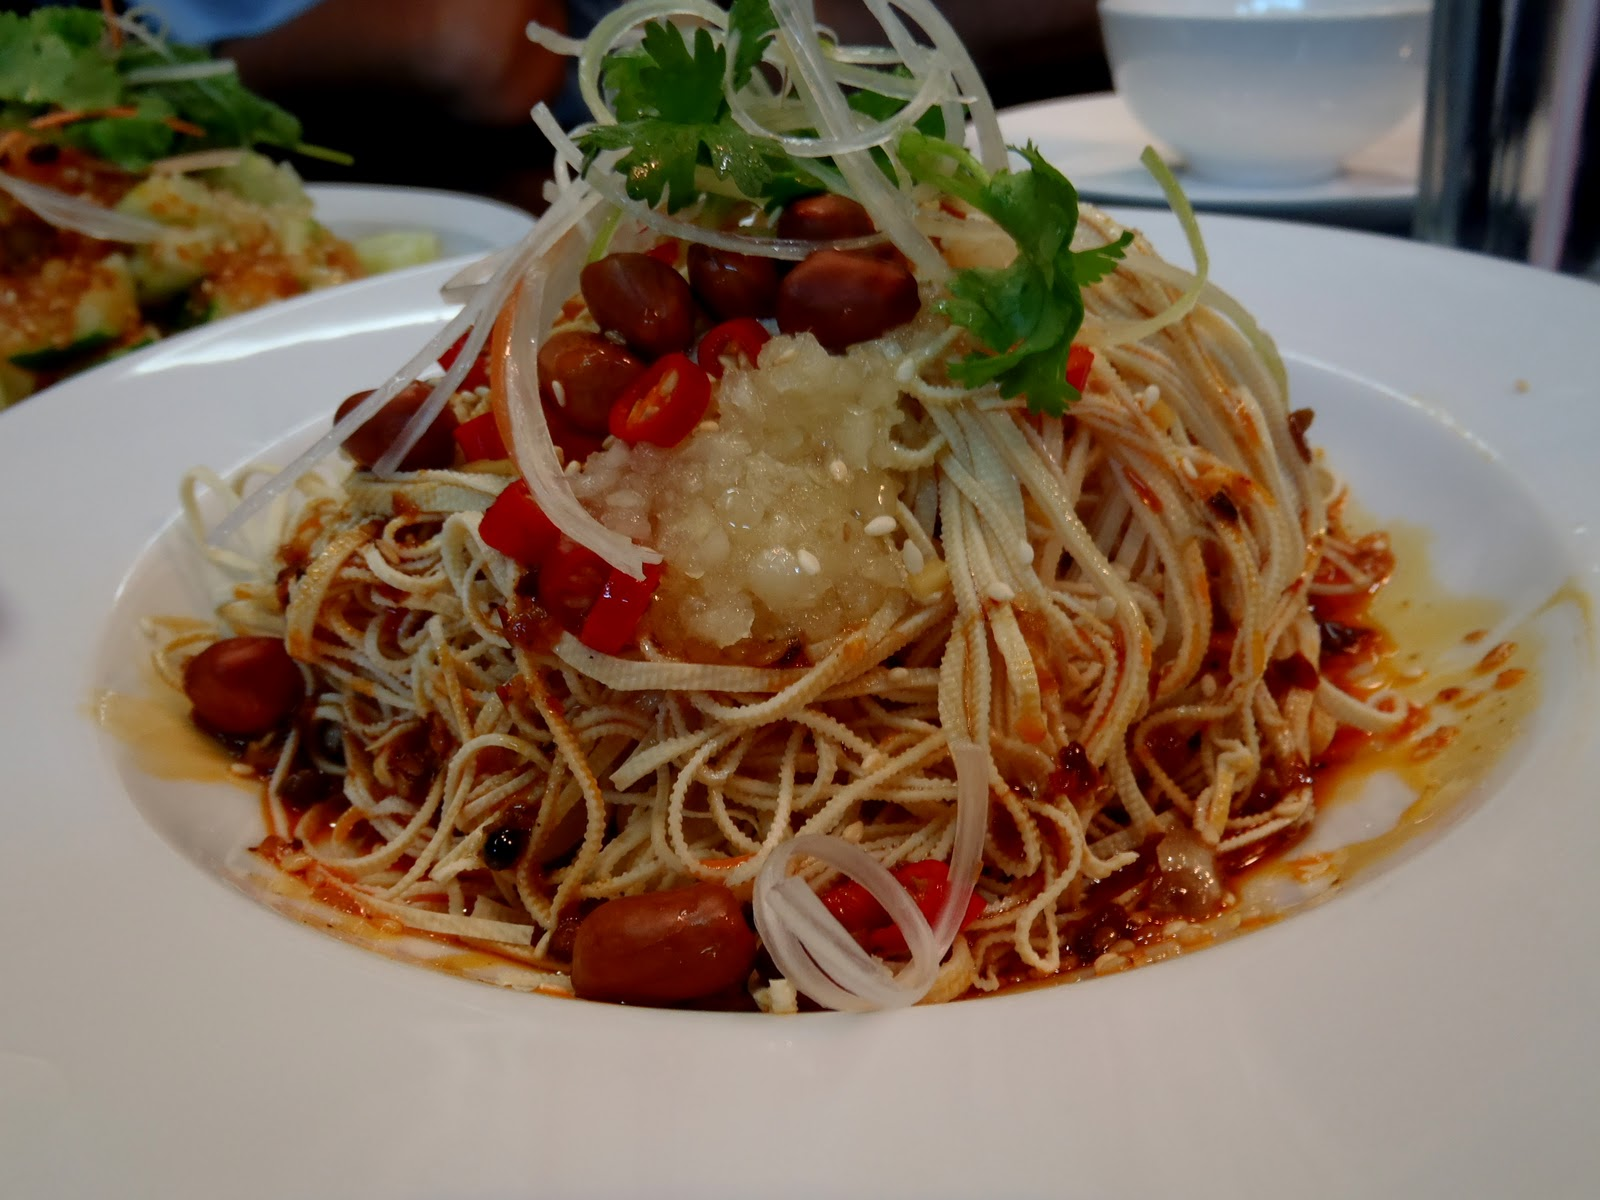 Chinese Food in Singapore | Hungry what to eat?